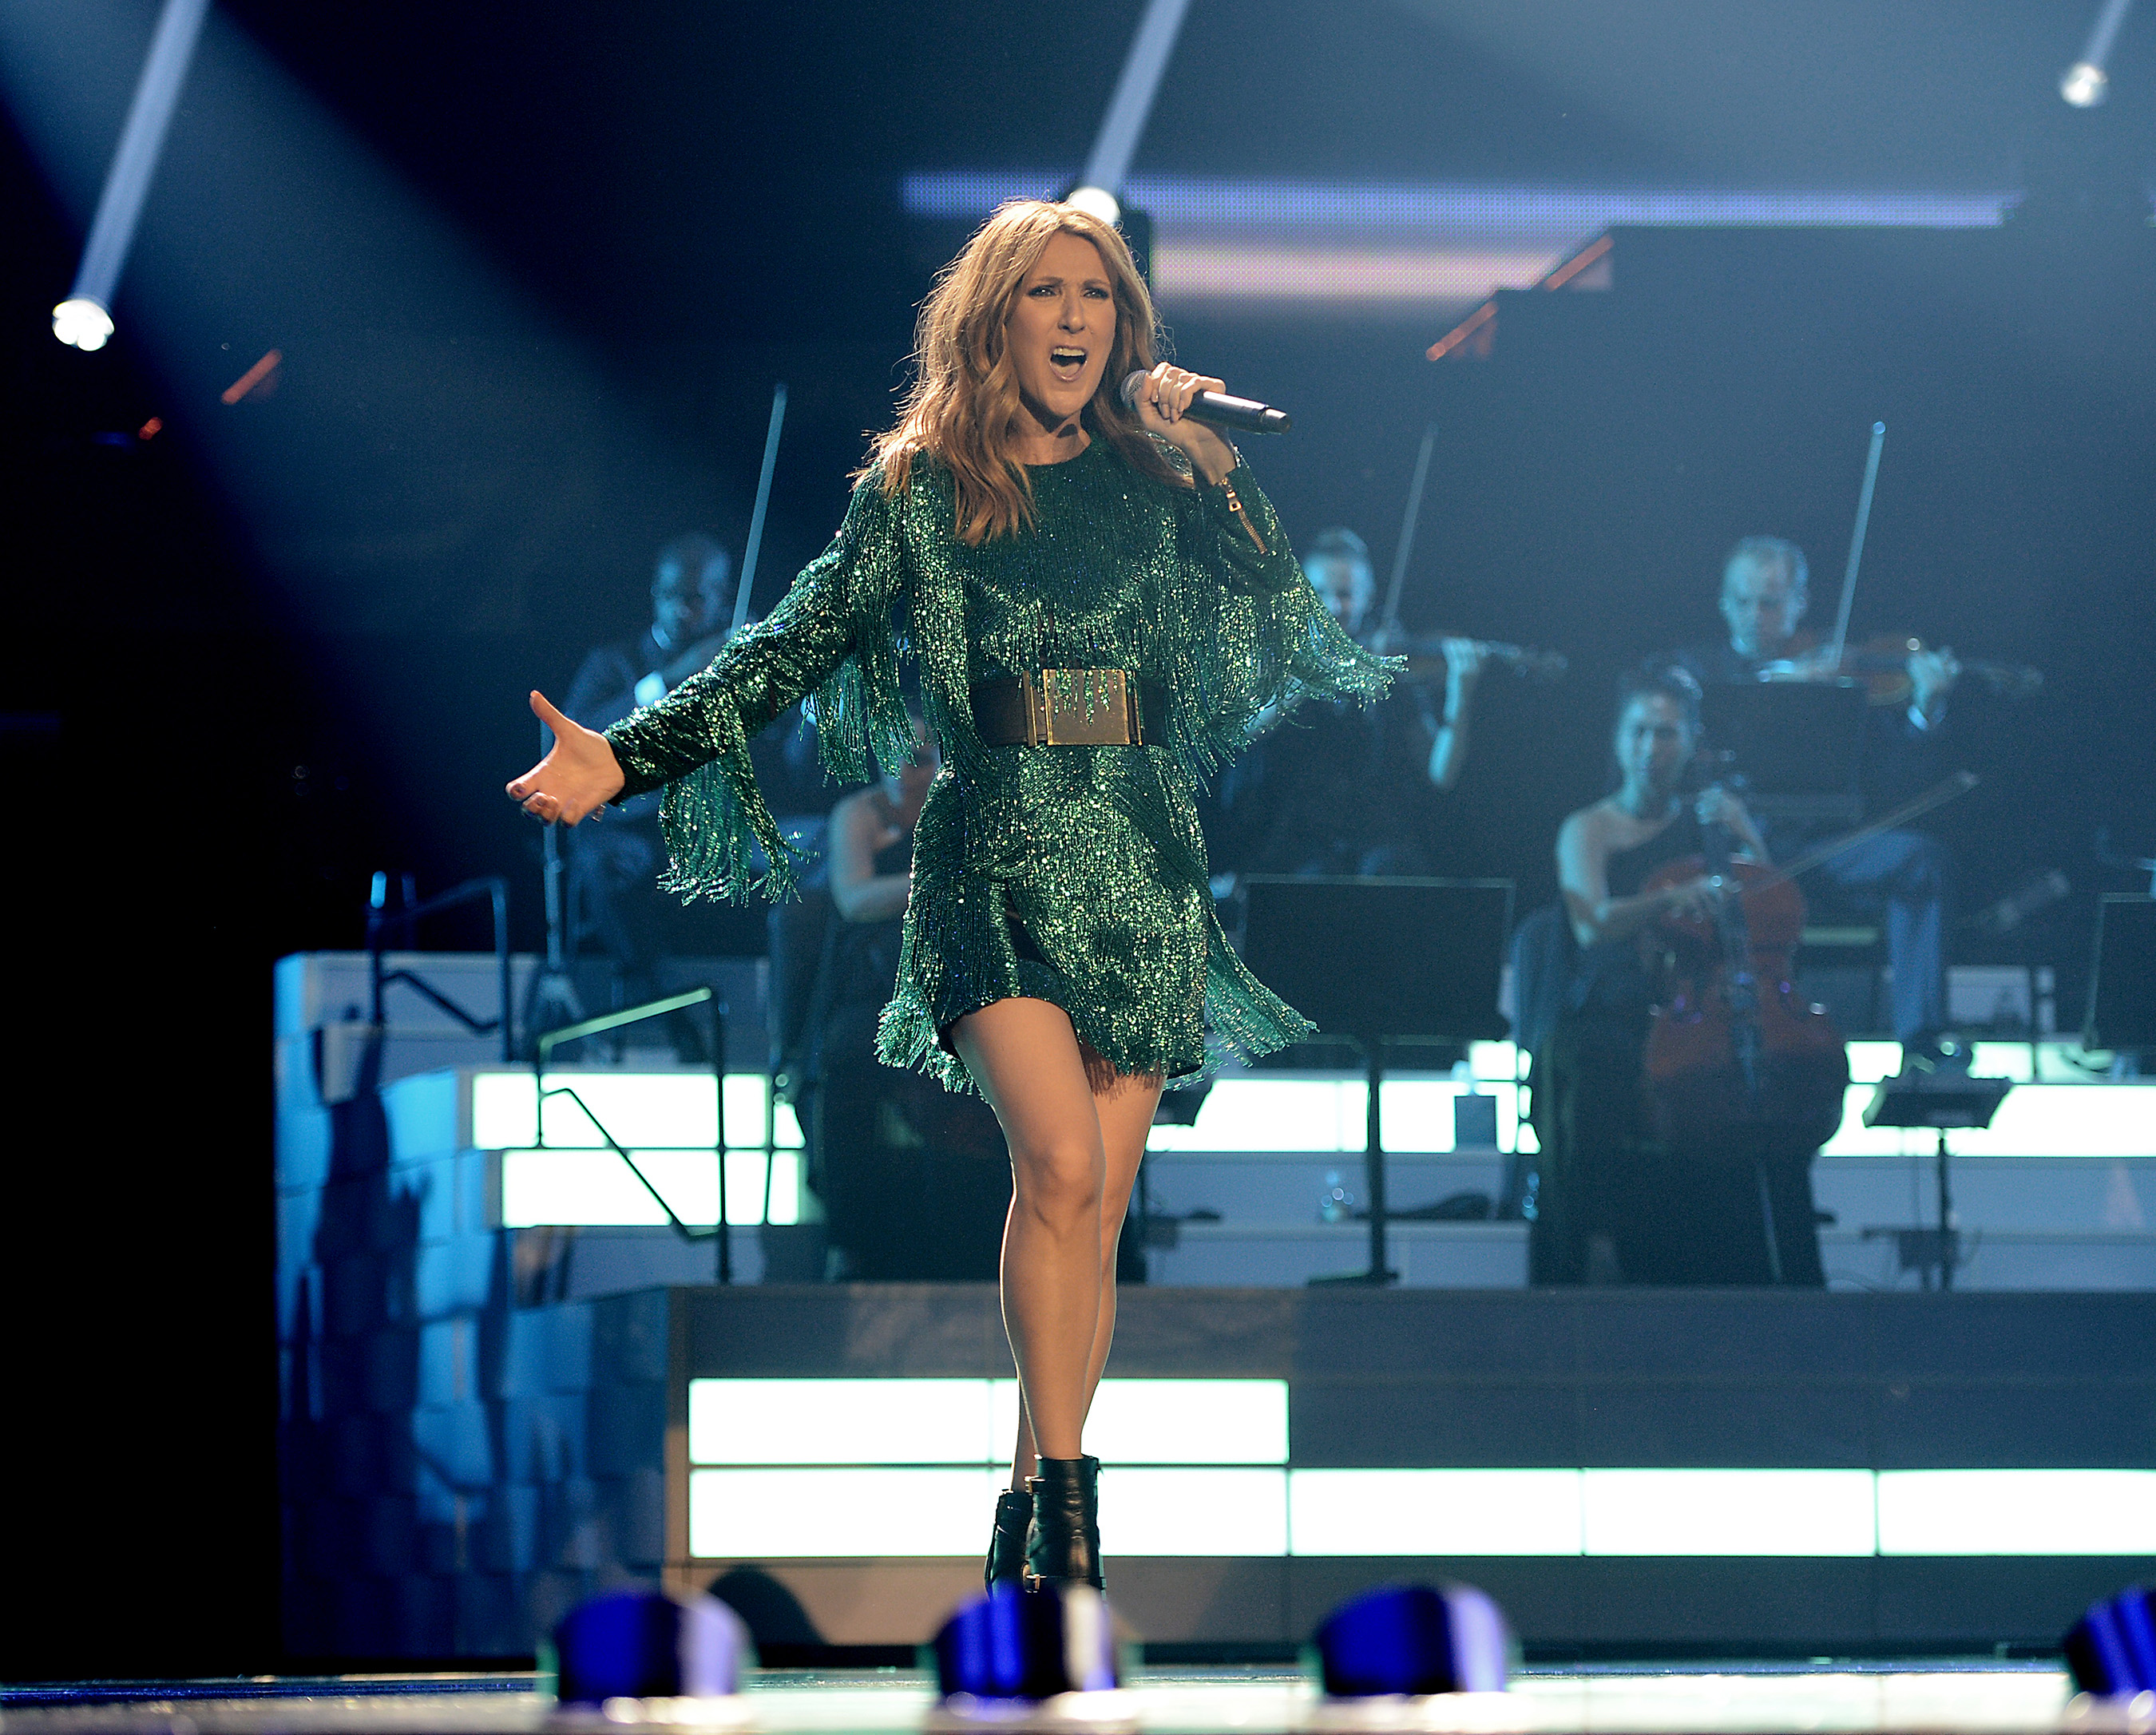 Celine Dion premieres much-anticipated return of her headlining residency show at The Colosseum at Caesars Palace on Thursday, Aug. 27. Photo Credit: Denise Truscello